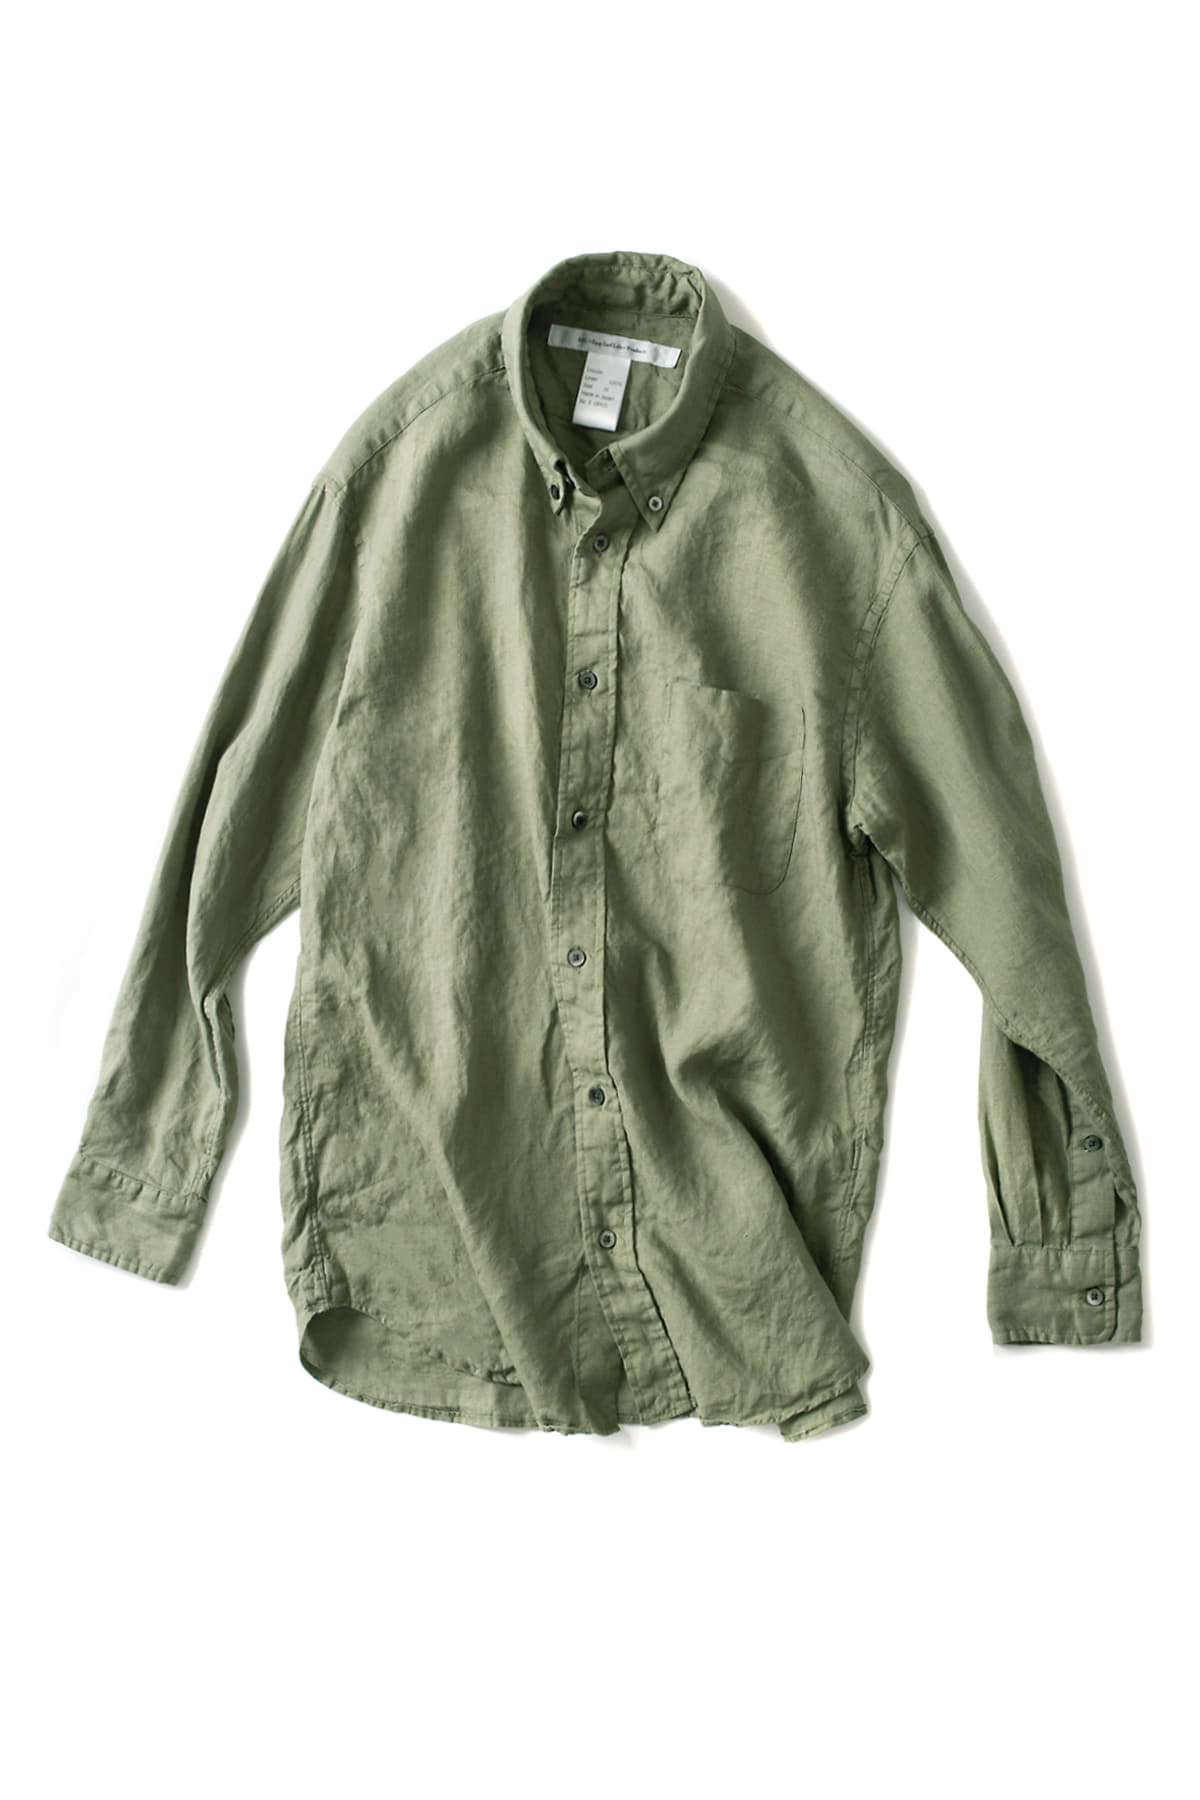 EEL : Lincoln Shirts (Olive)